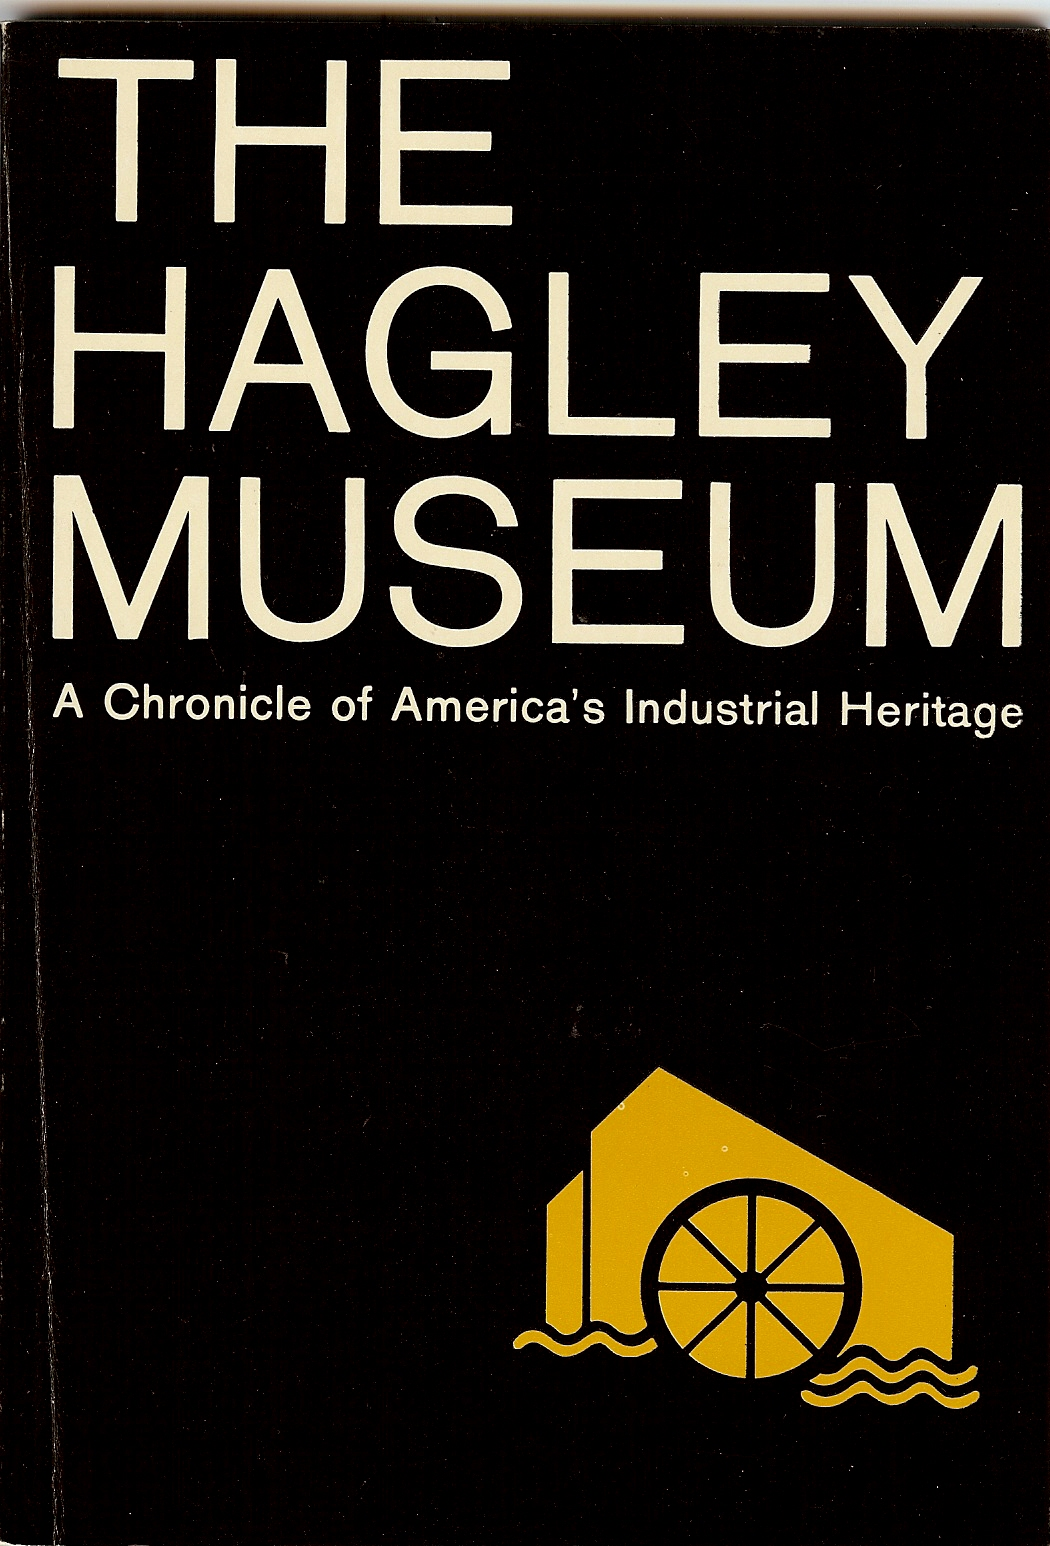 THE HAGLEY MUSEUM : A Chronicle of America's Industrial Heritage